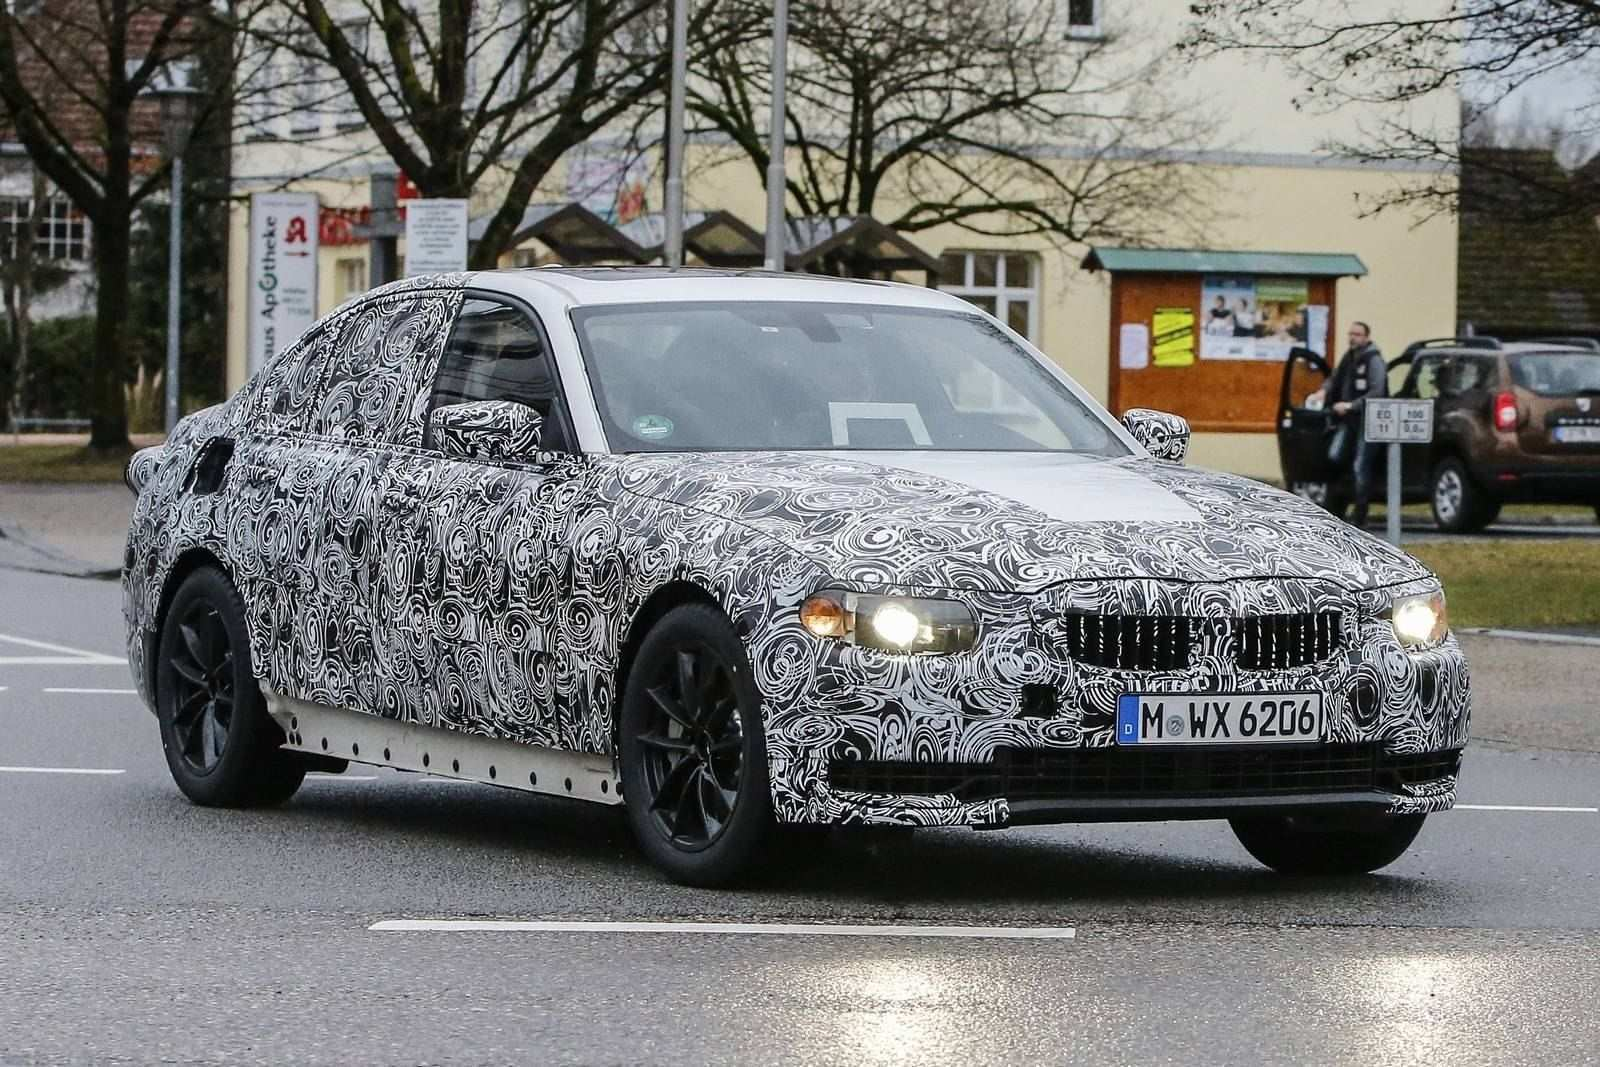 82 All New Spy Shots 2020 BMW 3 Series Ratings with Spy Shots 2020 BMW 3 Series